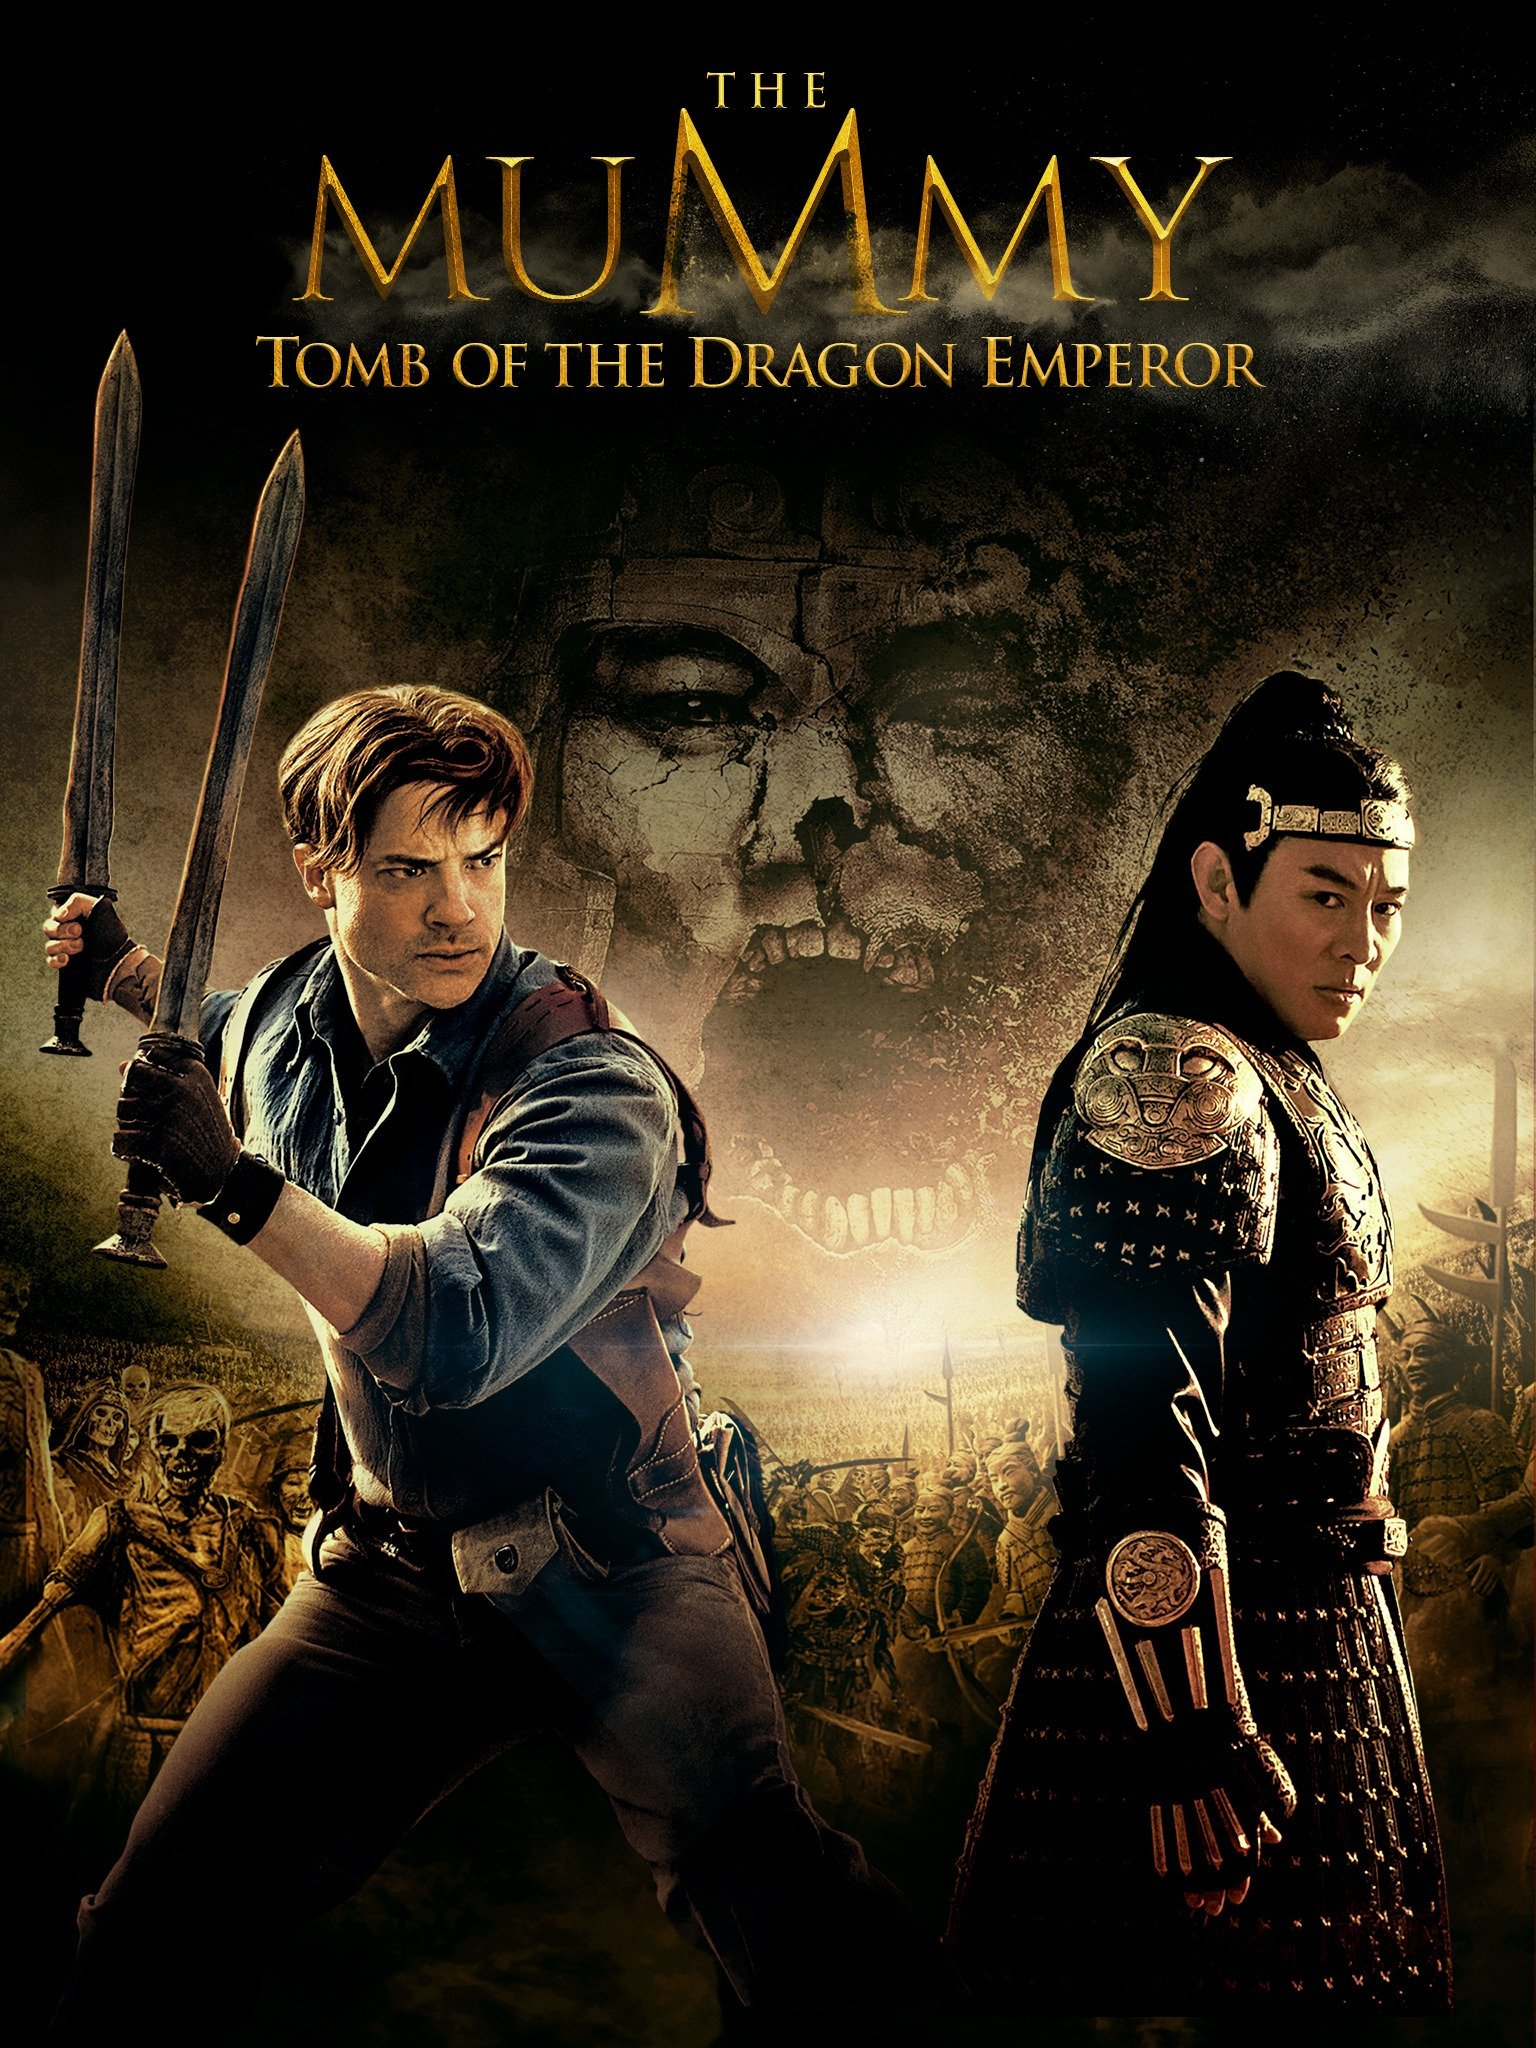 The Mummy: Tomb of the Dragon Emperor (2008) - Rotten Tomatoes